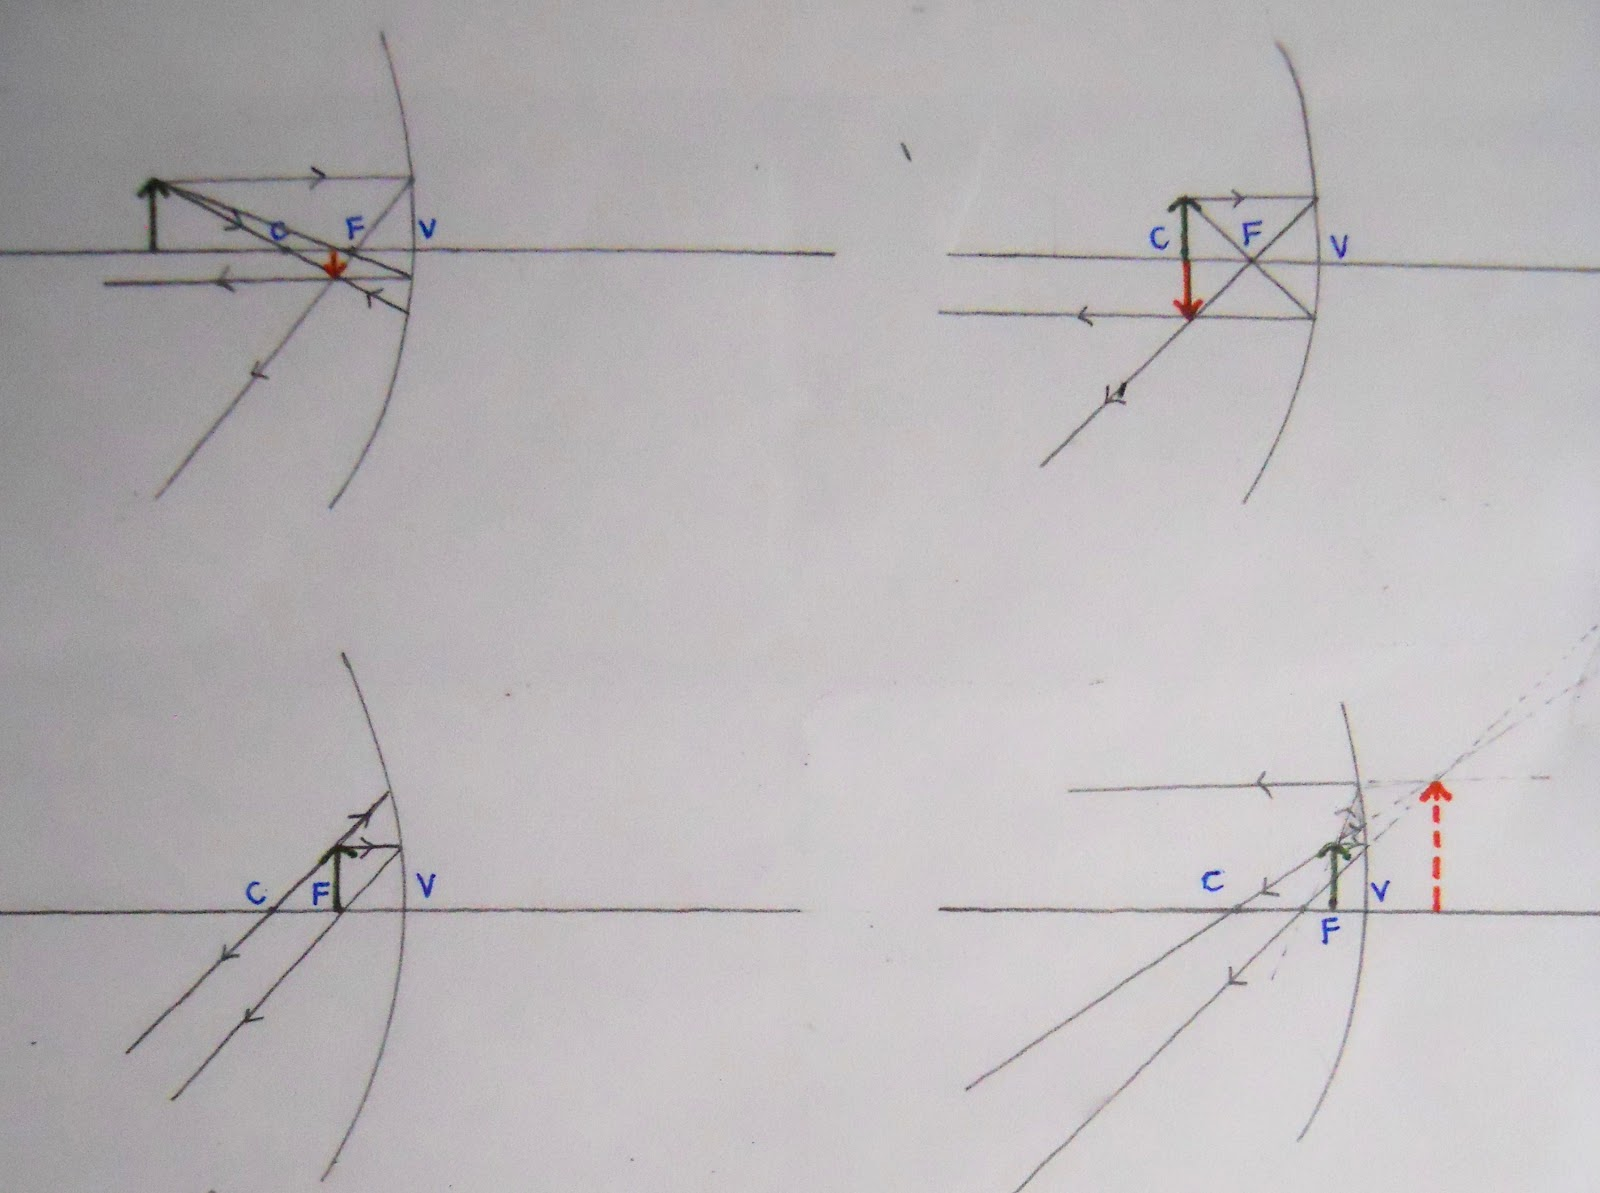 hight resolution of diagram 1 light ray diagrams which show how the image in convex mirror changes depending on the object distance